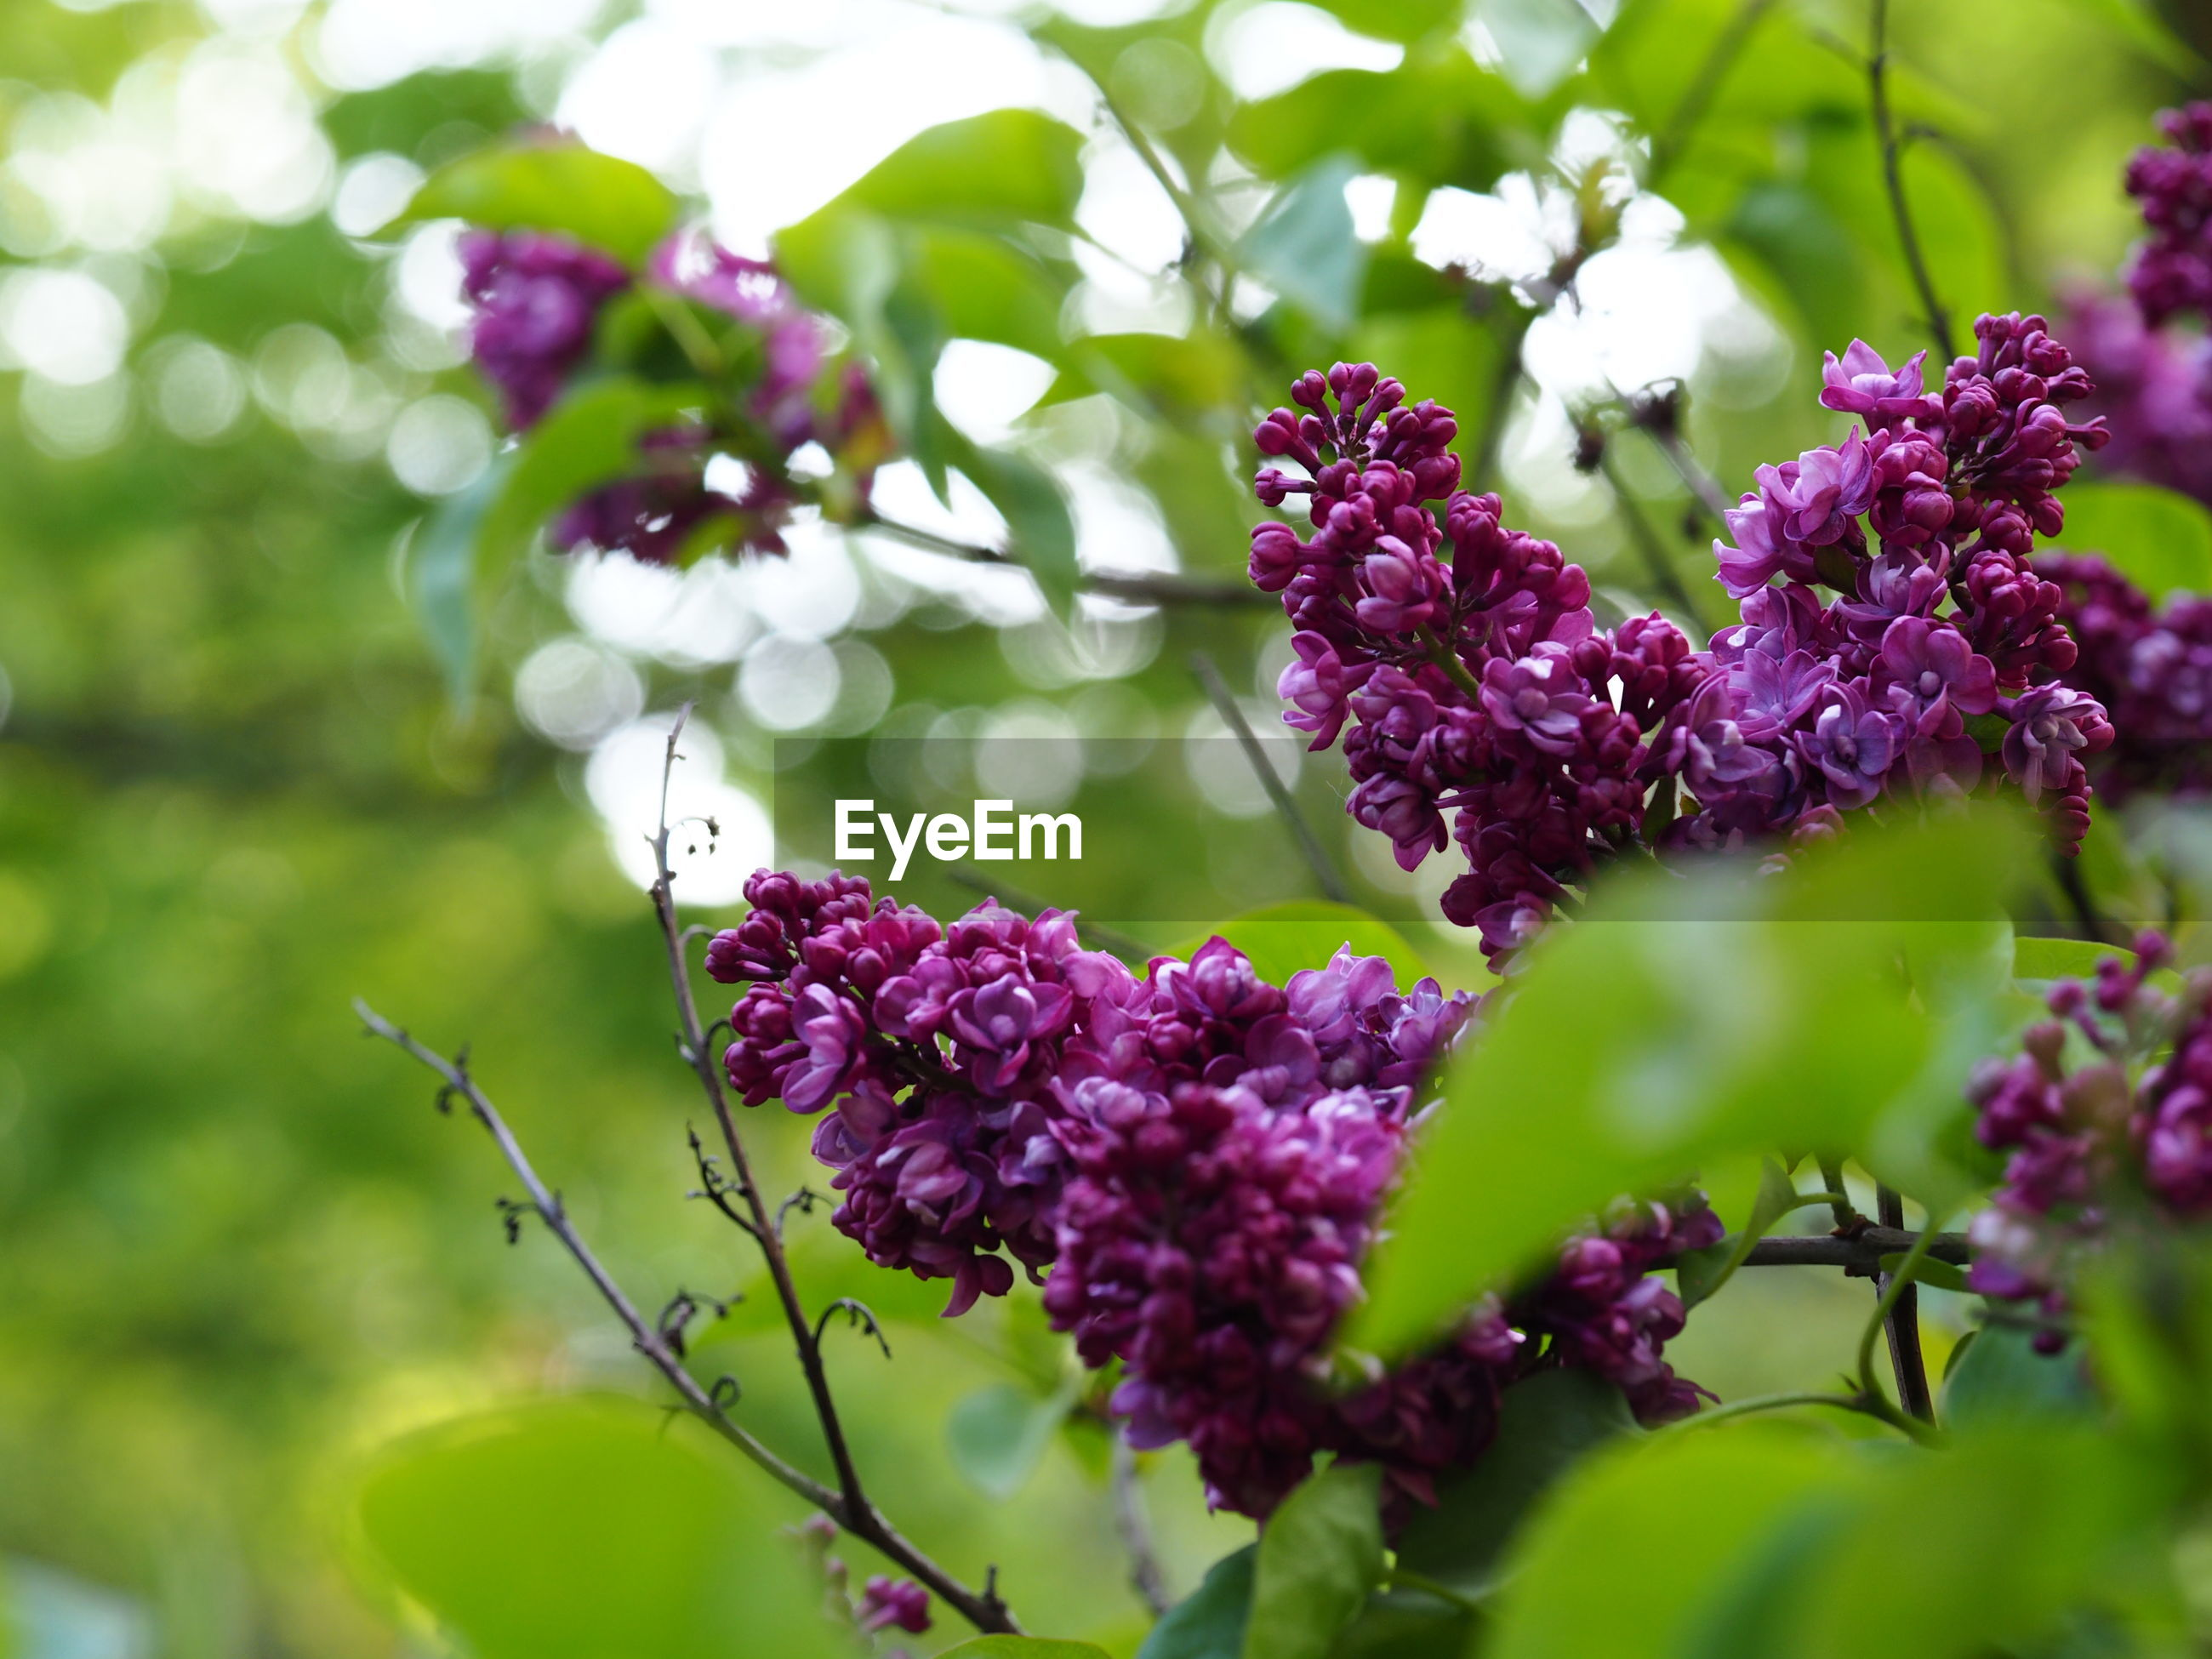 LOW ANGLE VIEW OF PURPLE FLOWERS BLOOMING OUTDOORS